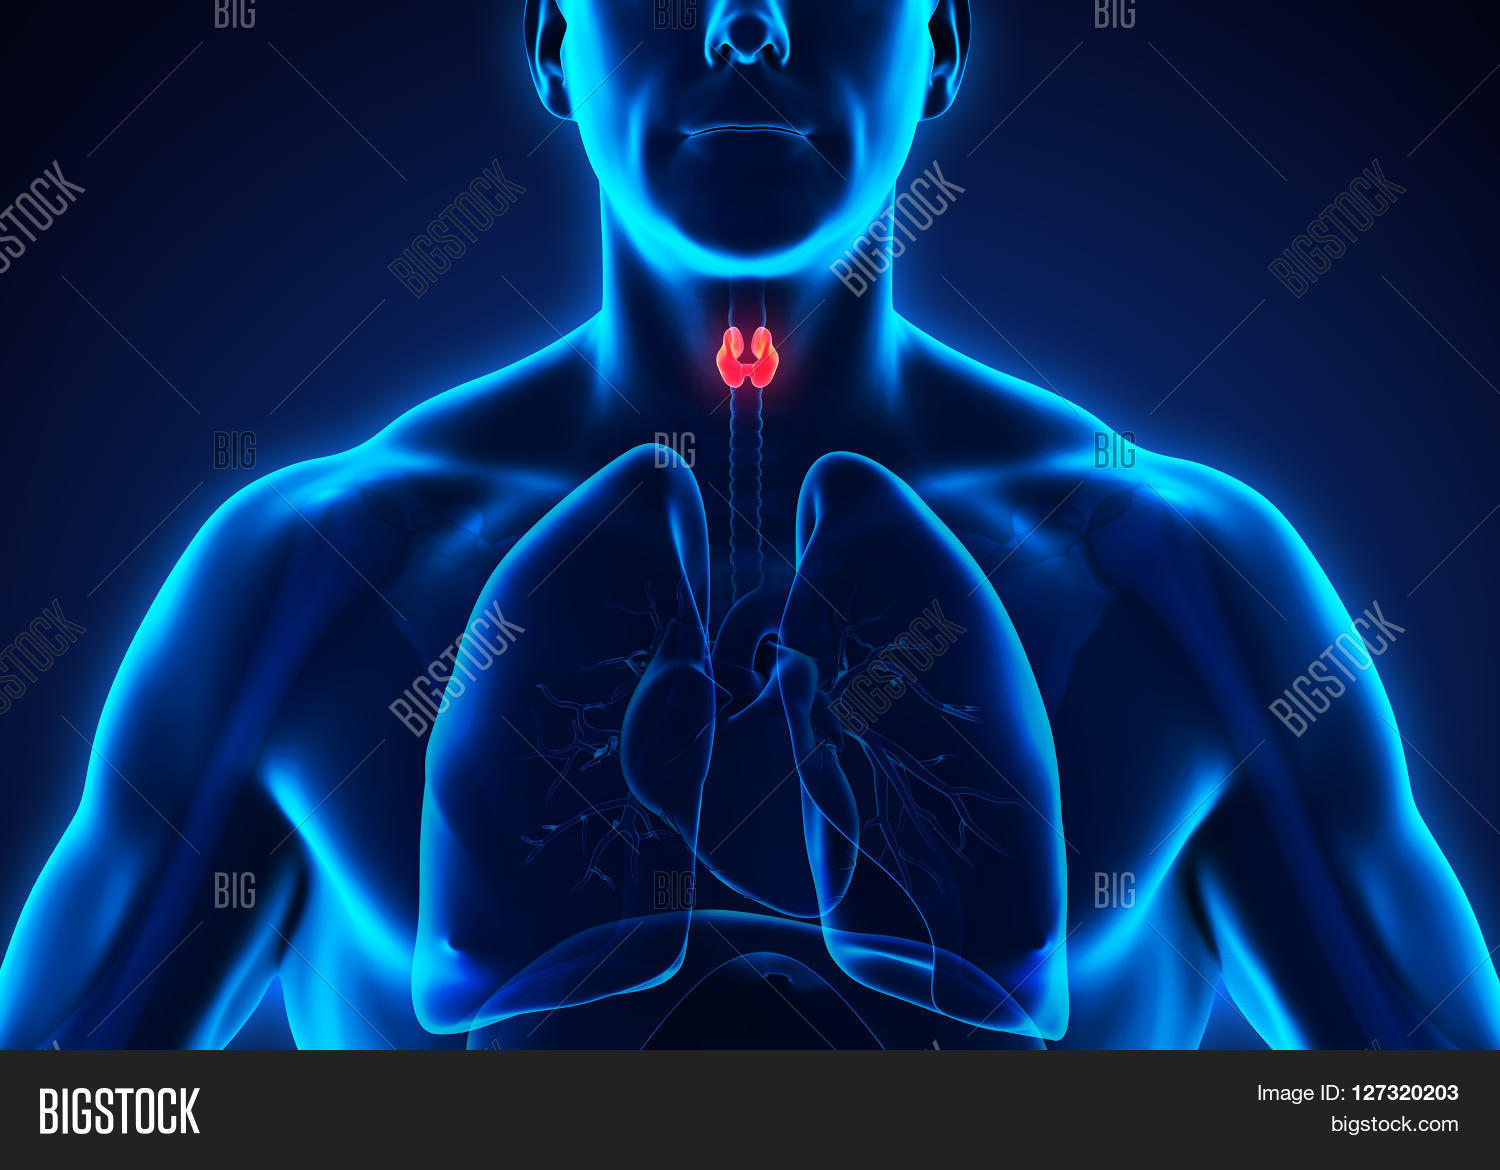 Human Thyroid Gland Image Photo Free Trial Bigstock